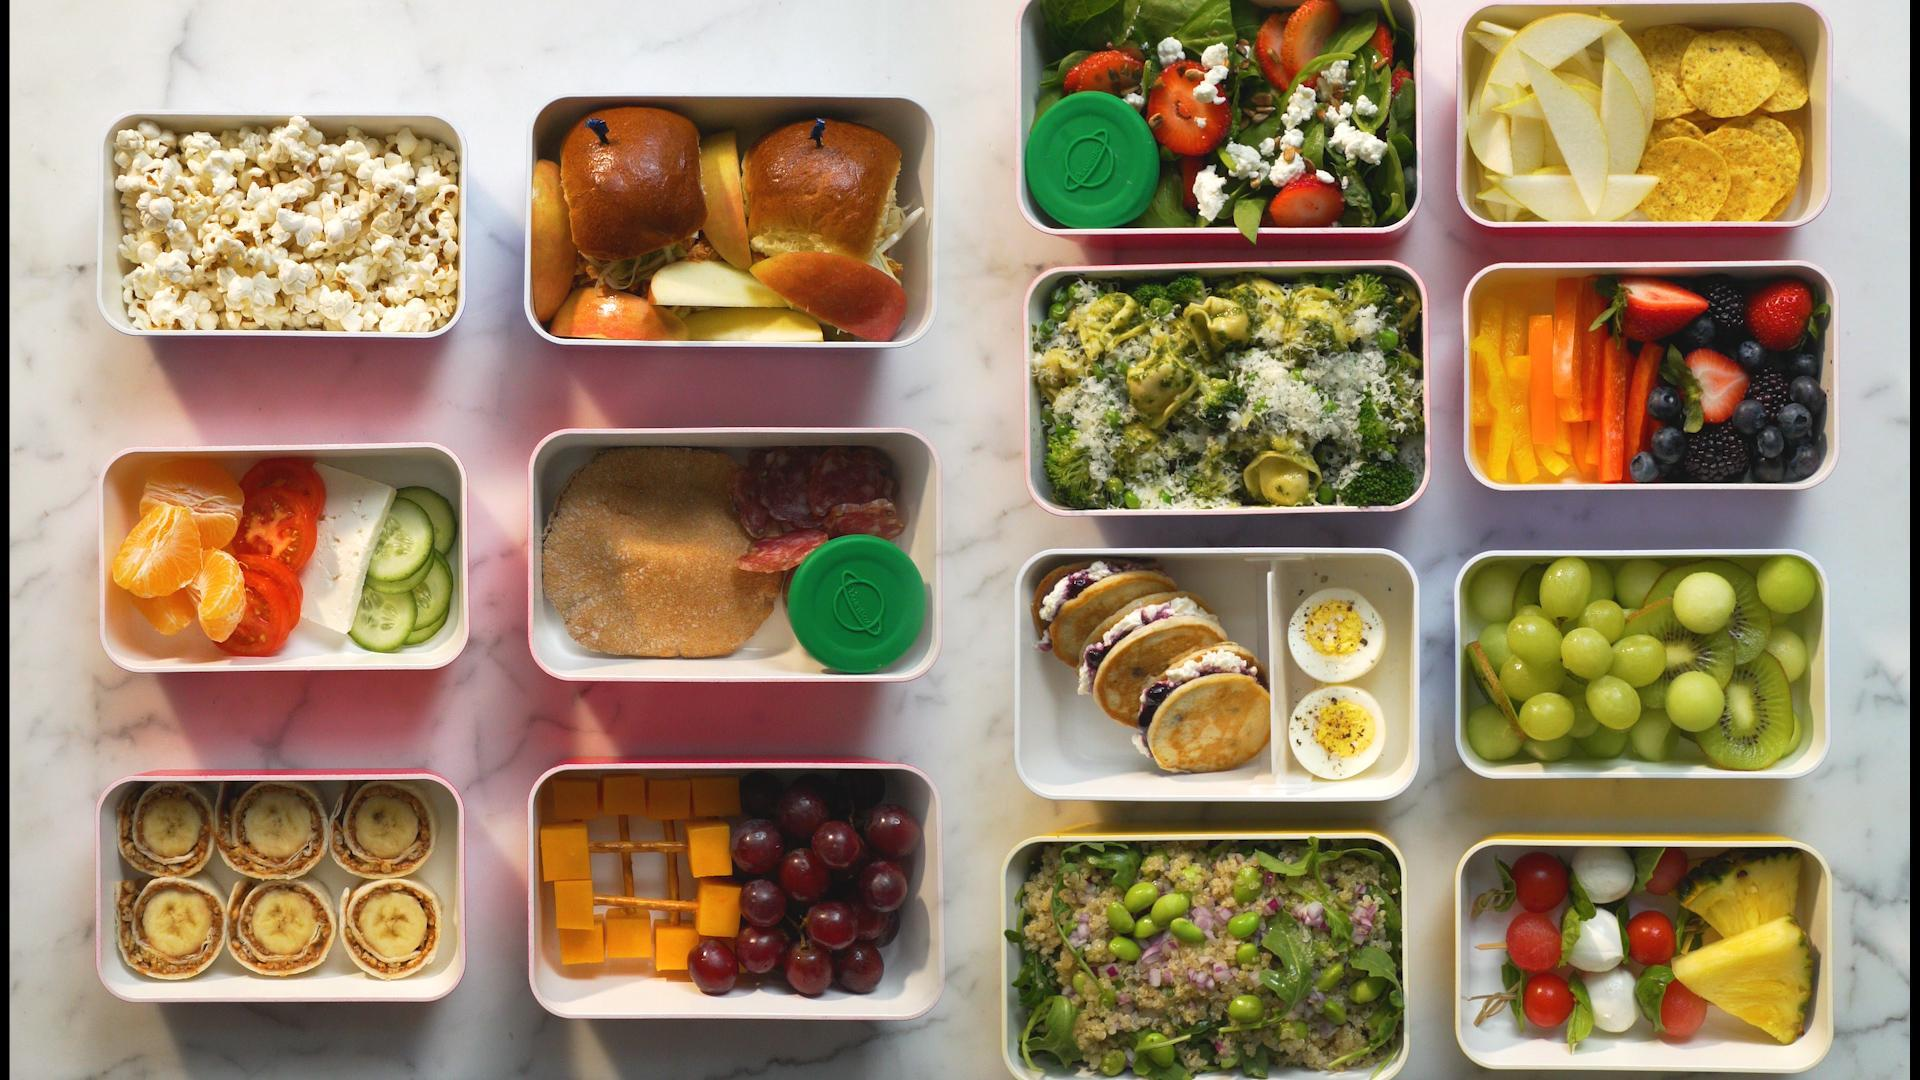 A Real-Life Look At Today's Packed School Lunches | HuffPost Life